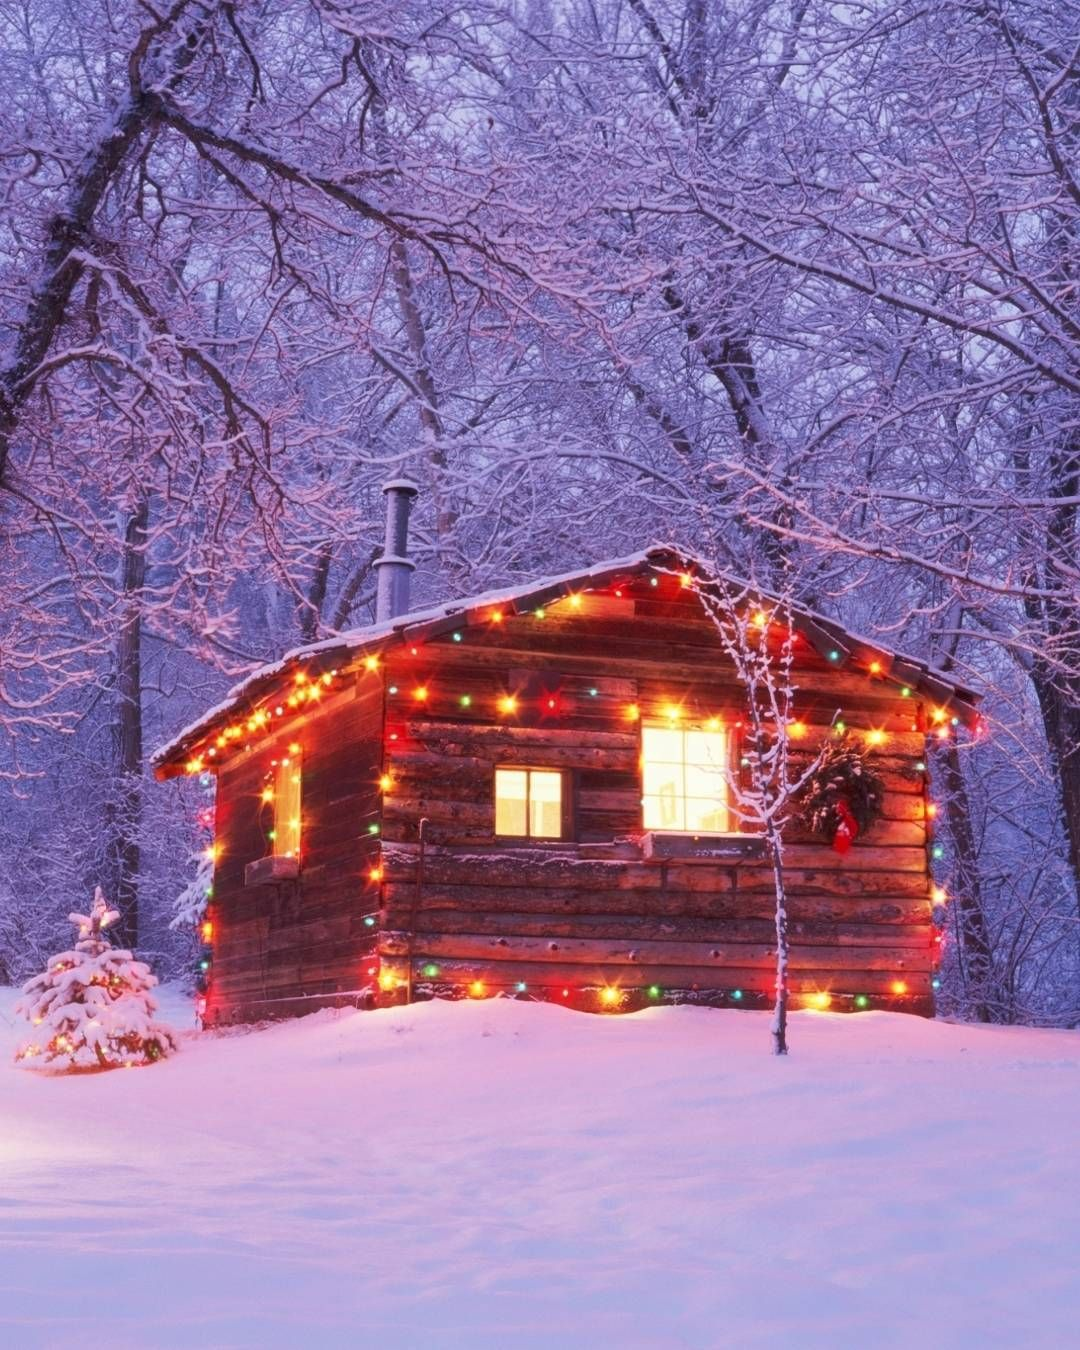 Driving Around To See Christmas Lights Is At The Top Of Our Winter Bucket List Log Cabin ChristmasRustic ExteriorWood